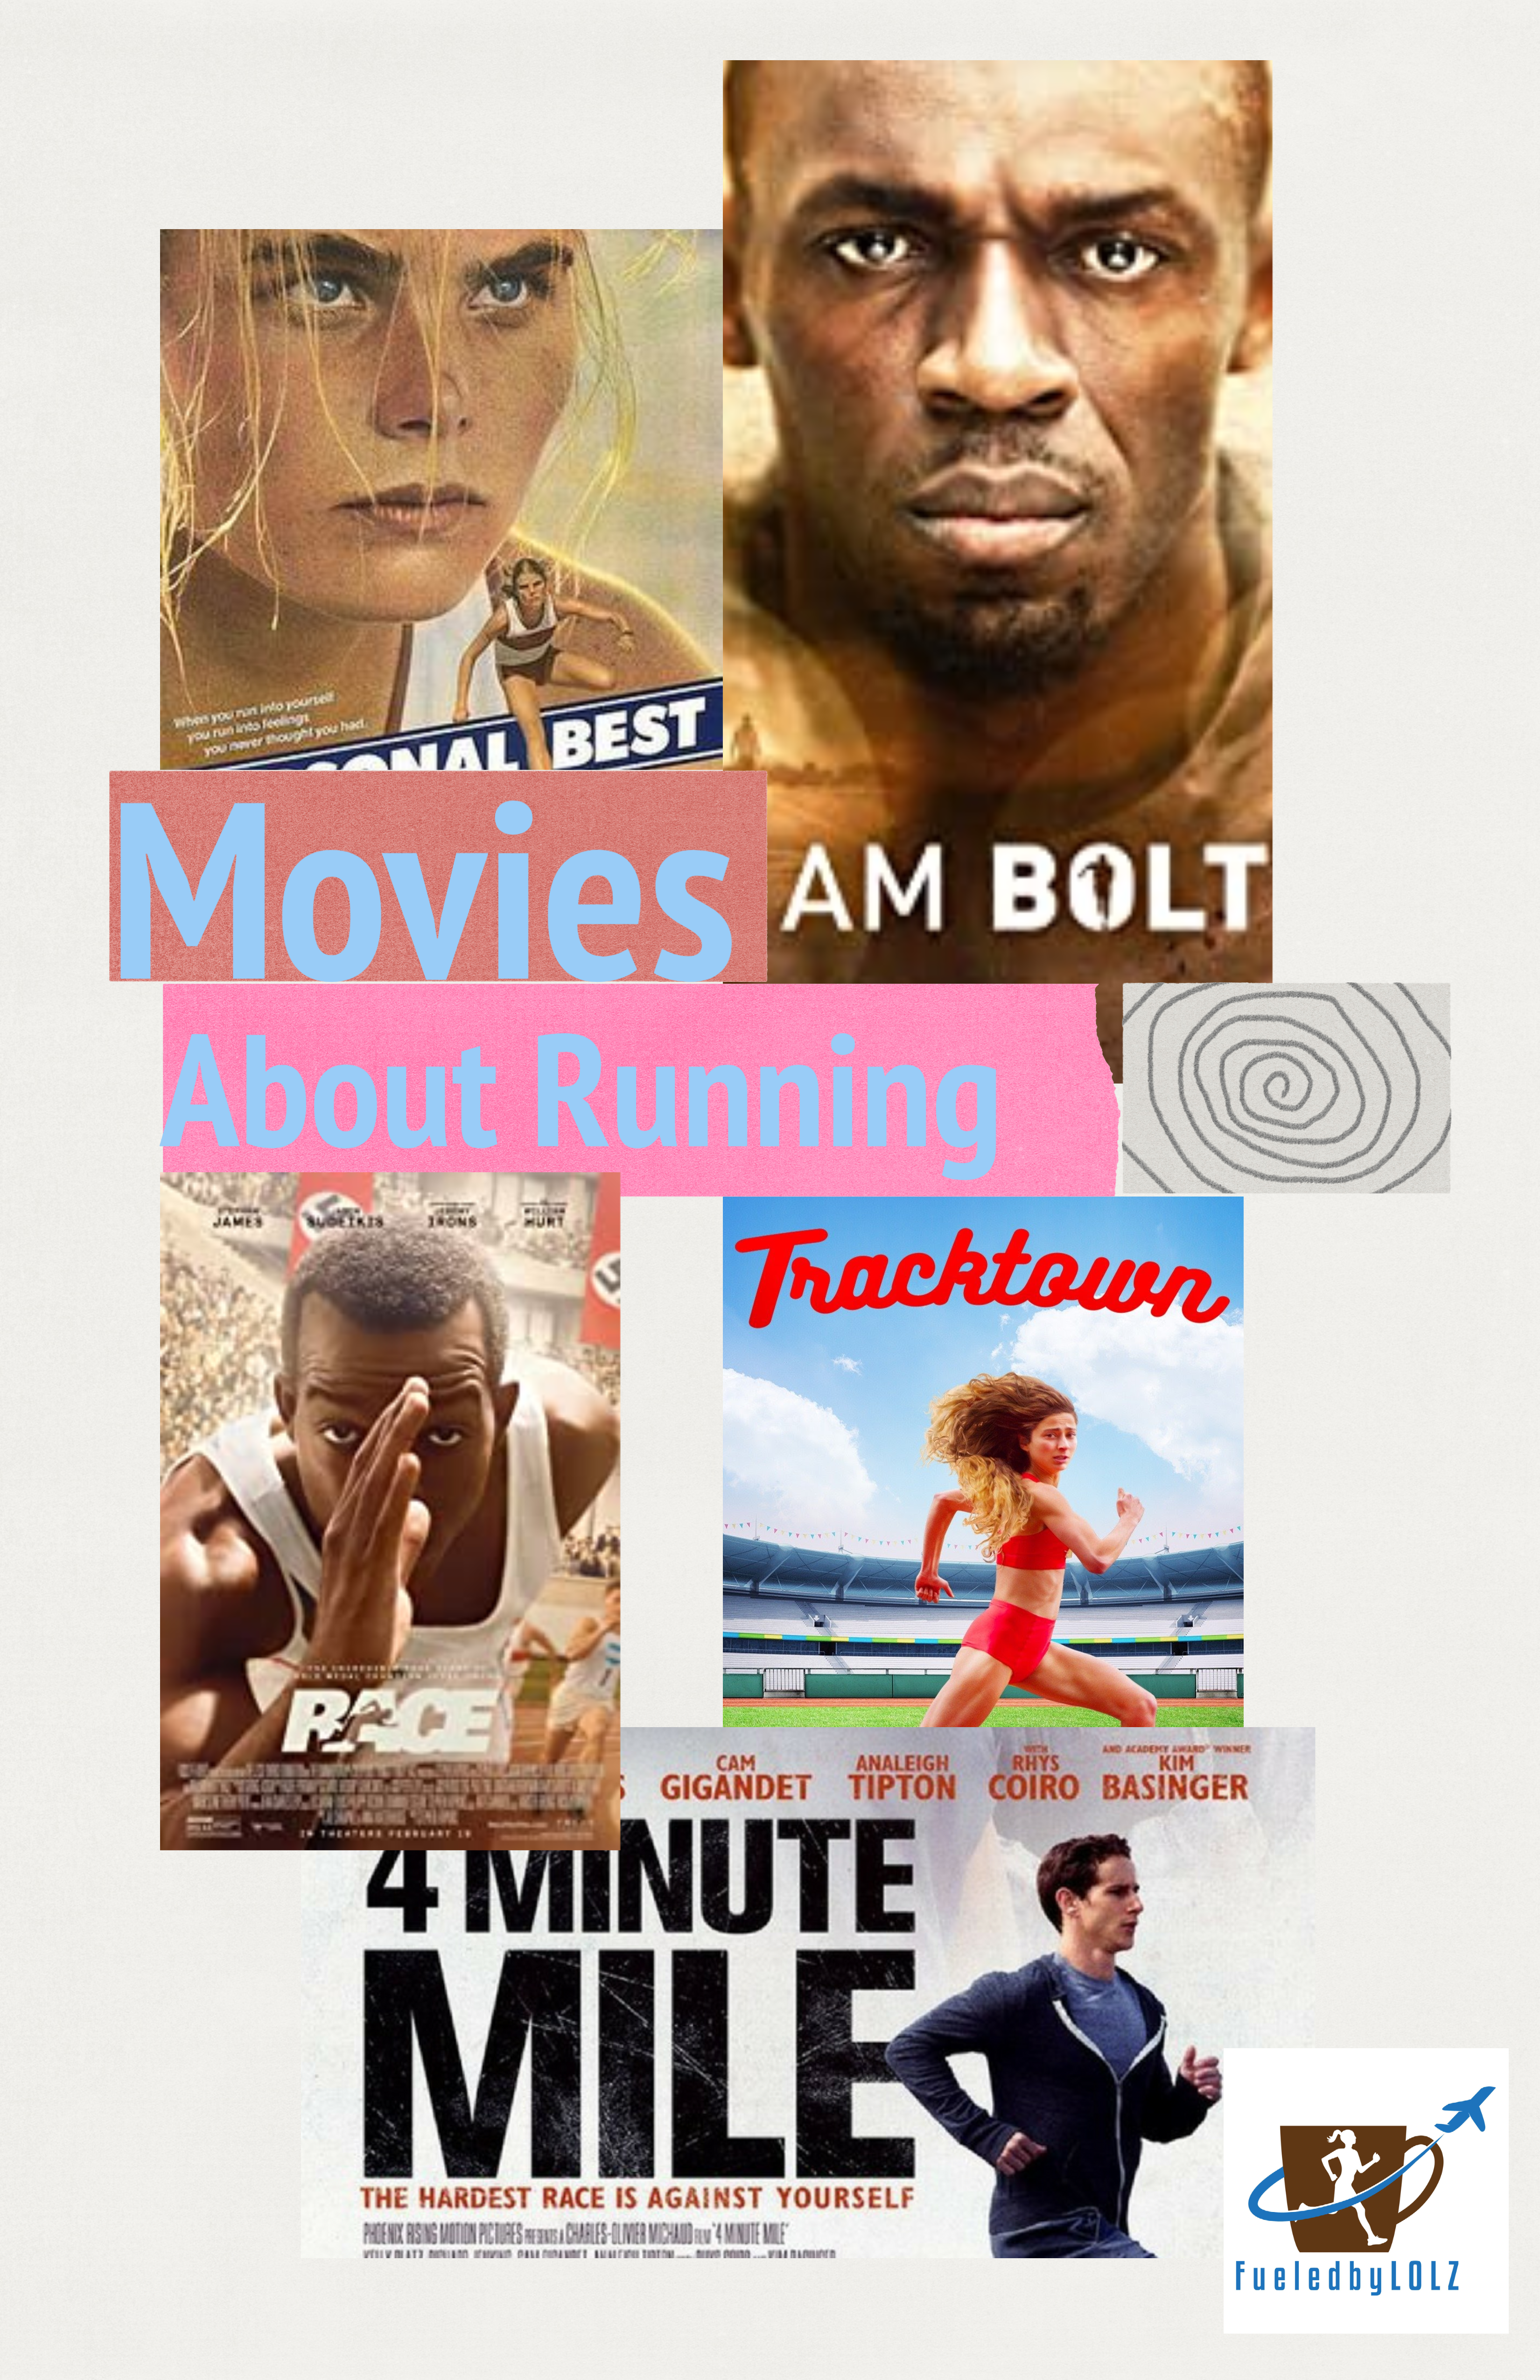 Movies about running